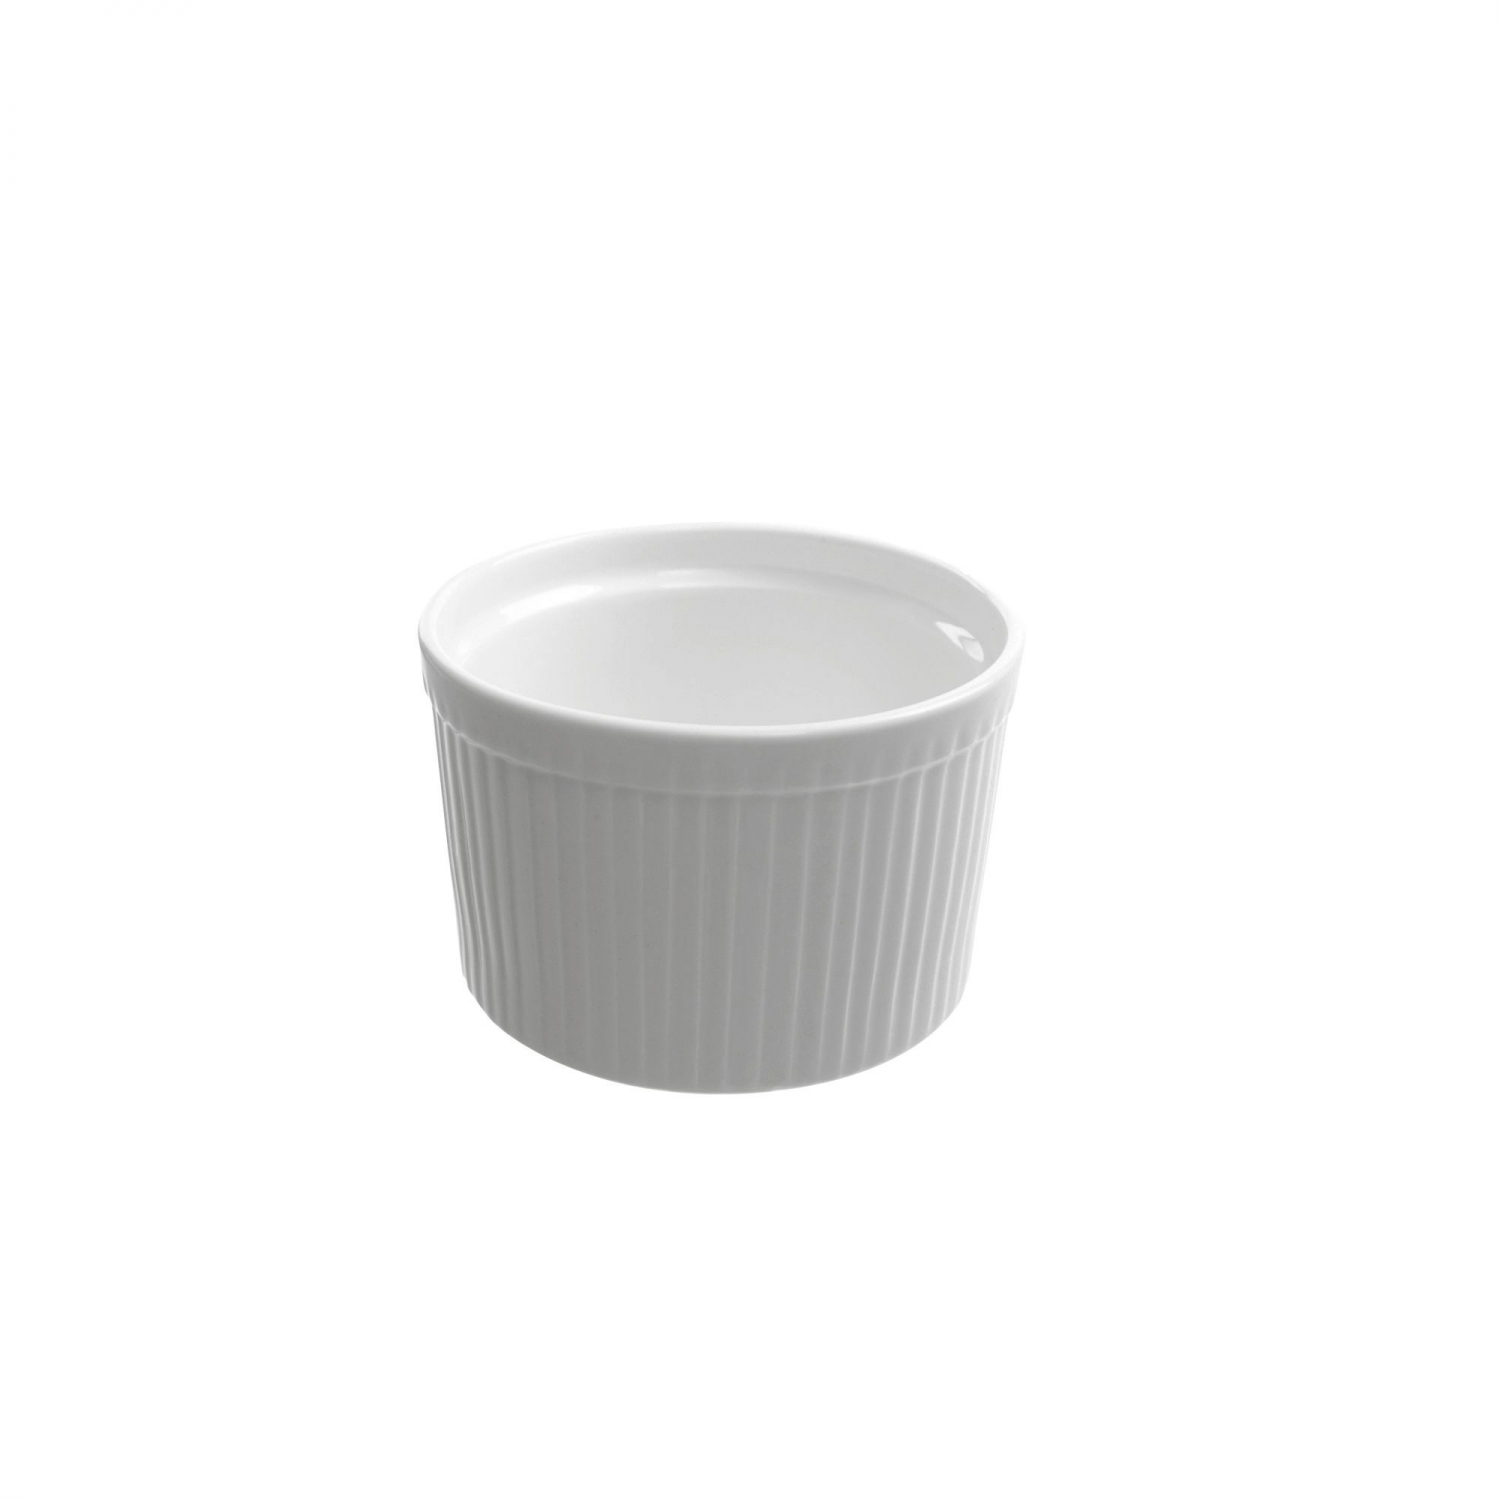 10 Strawberry Street WTR-4SUF Whittier Ramekin 8 oz.